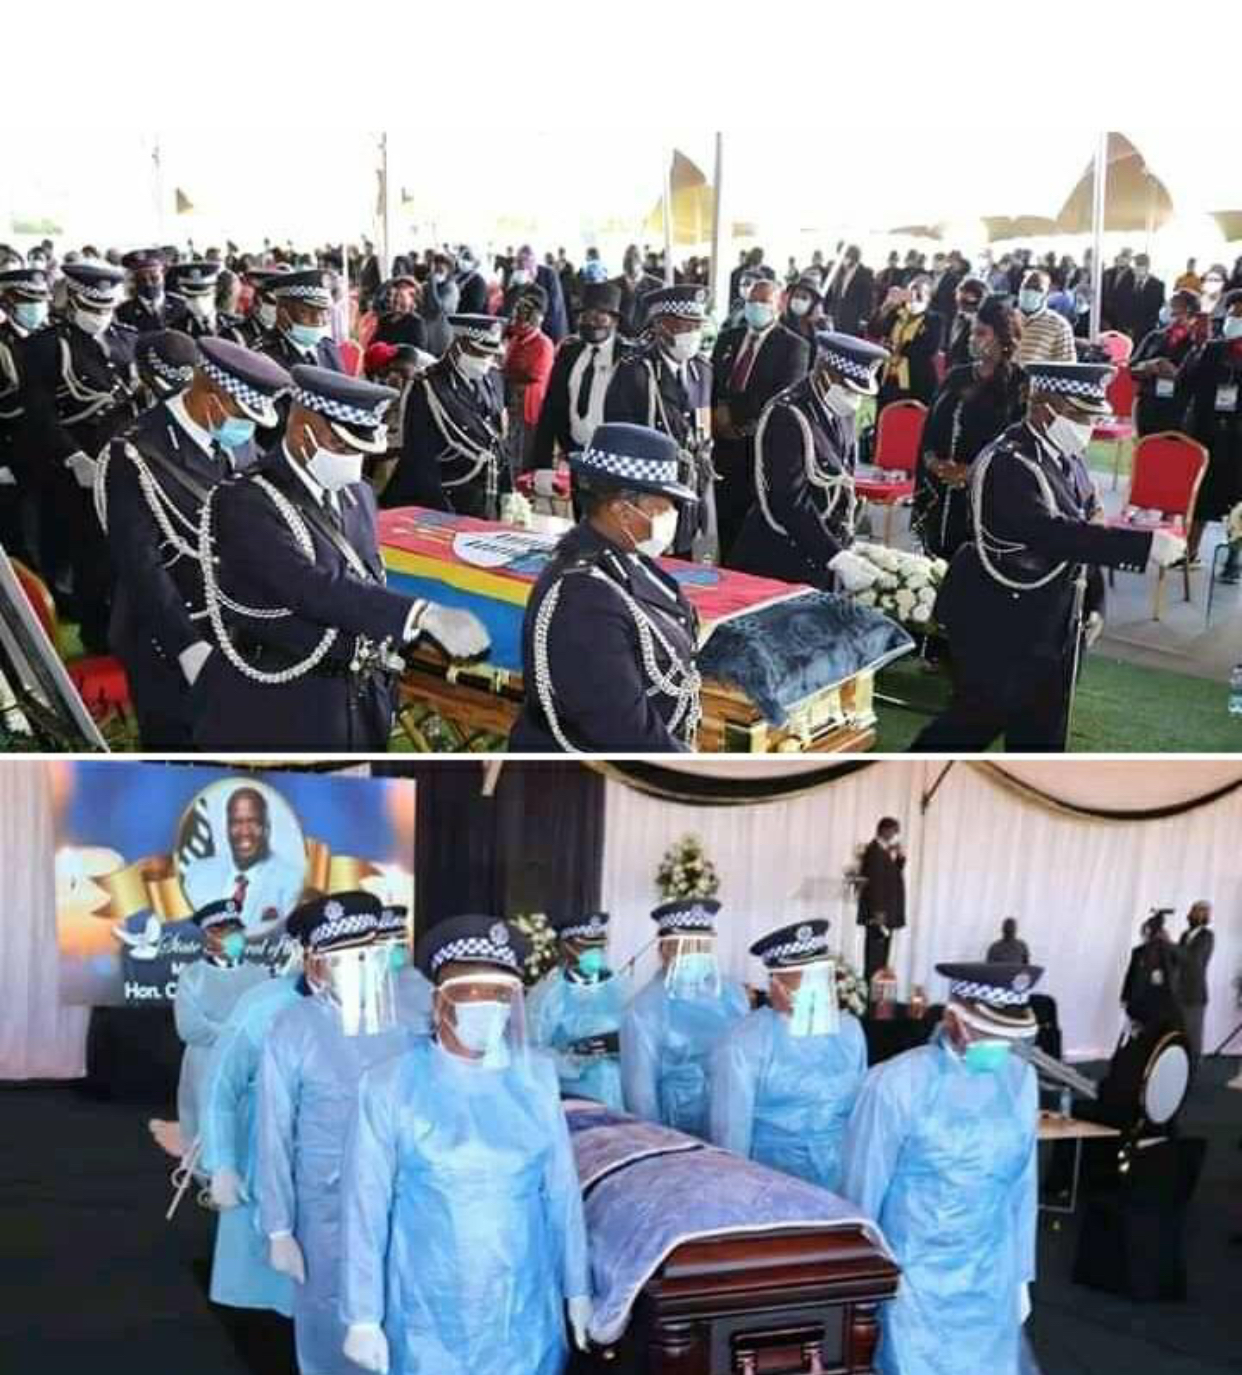 Minister of Public Service State funeral raises more suspicions regarding Prime Minister's cause of death